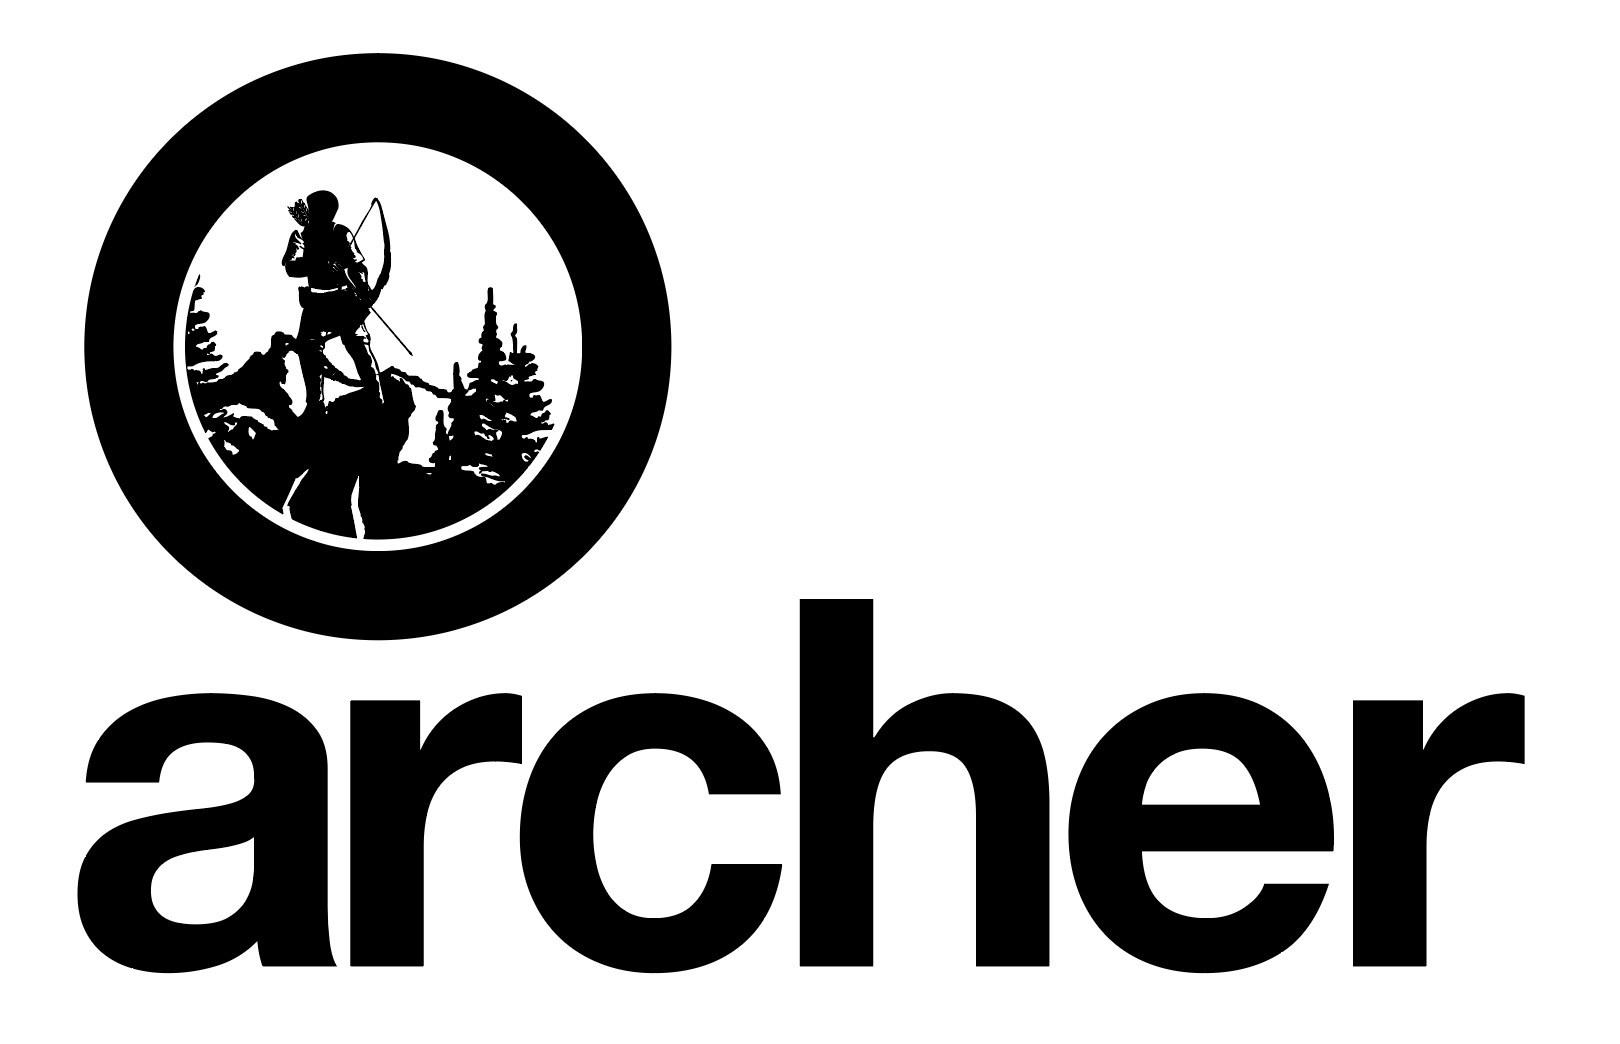 Chicagobased Startup Archer Signs Pitcher Clay Chapman To. Baal Veer Stickers. Luggage New York Stickers. Band Signs Of Stroke. Smoke Banners. Spectrum Decals. Legend Signs Of Stroke. Medieval Style Banners. Custom Wood Signs